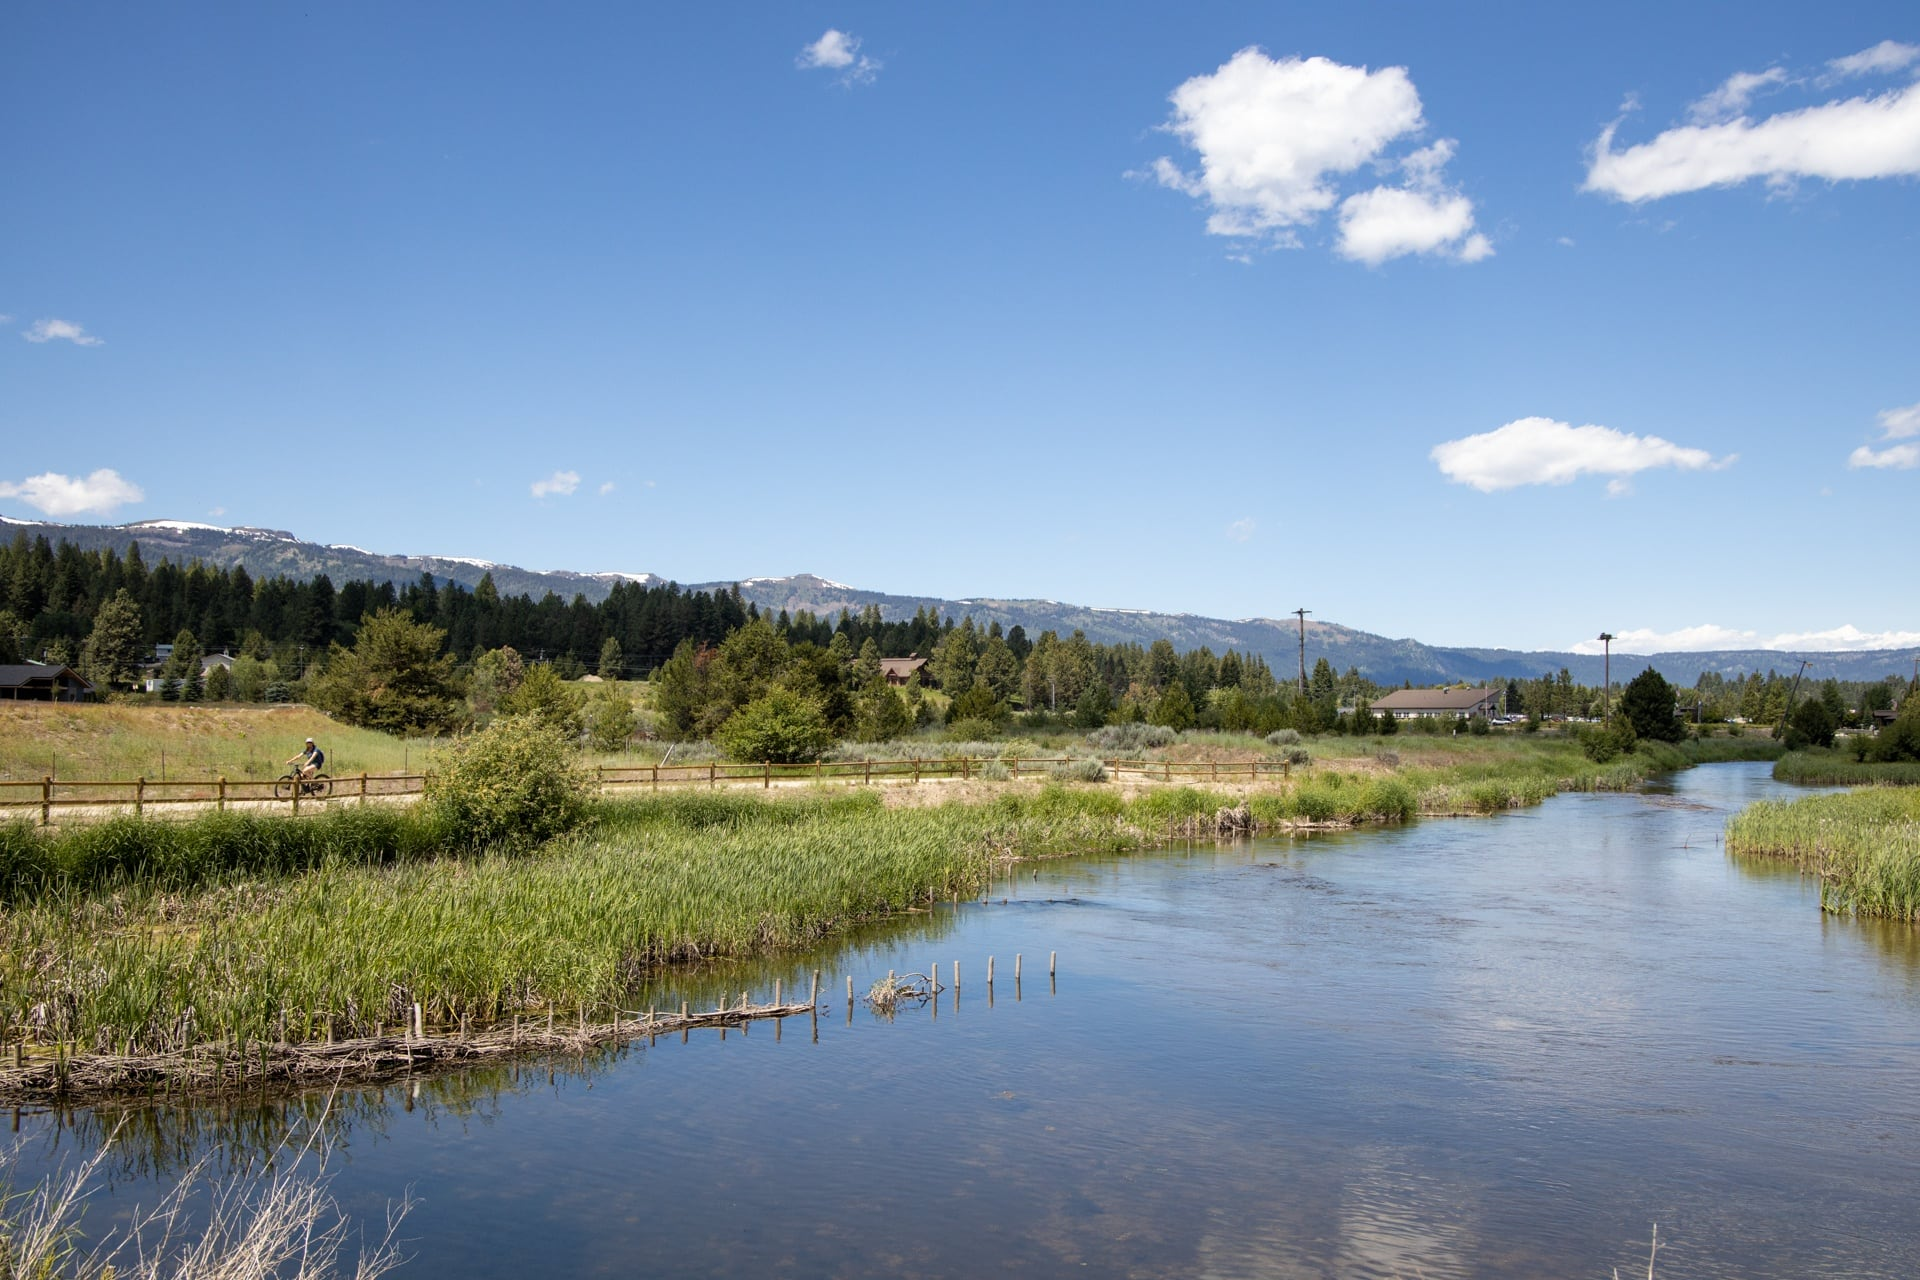 Biking the Strand // Explore the best outdoor recreation in Cascade, Idaho with this 4-day itinerary featuring hot springs, hiking, off-roading, biking, and more.